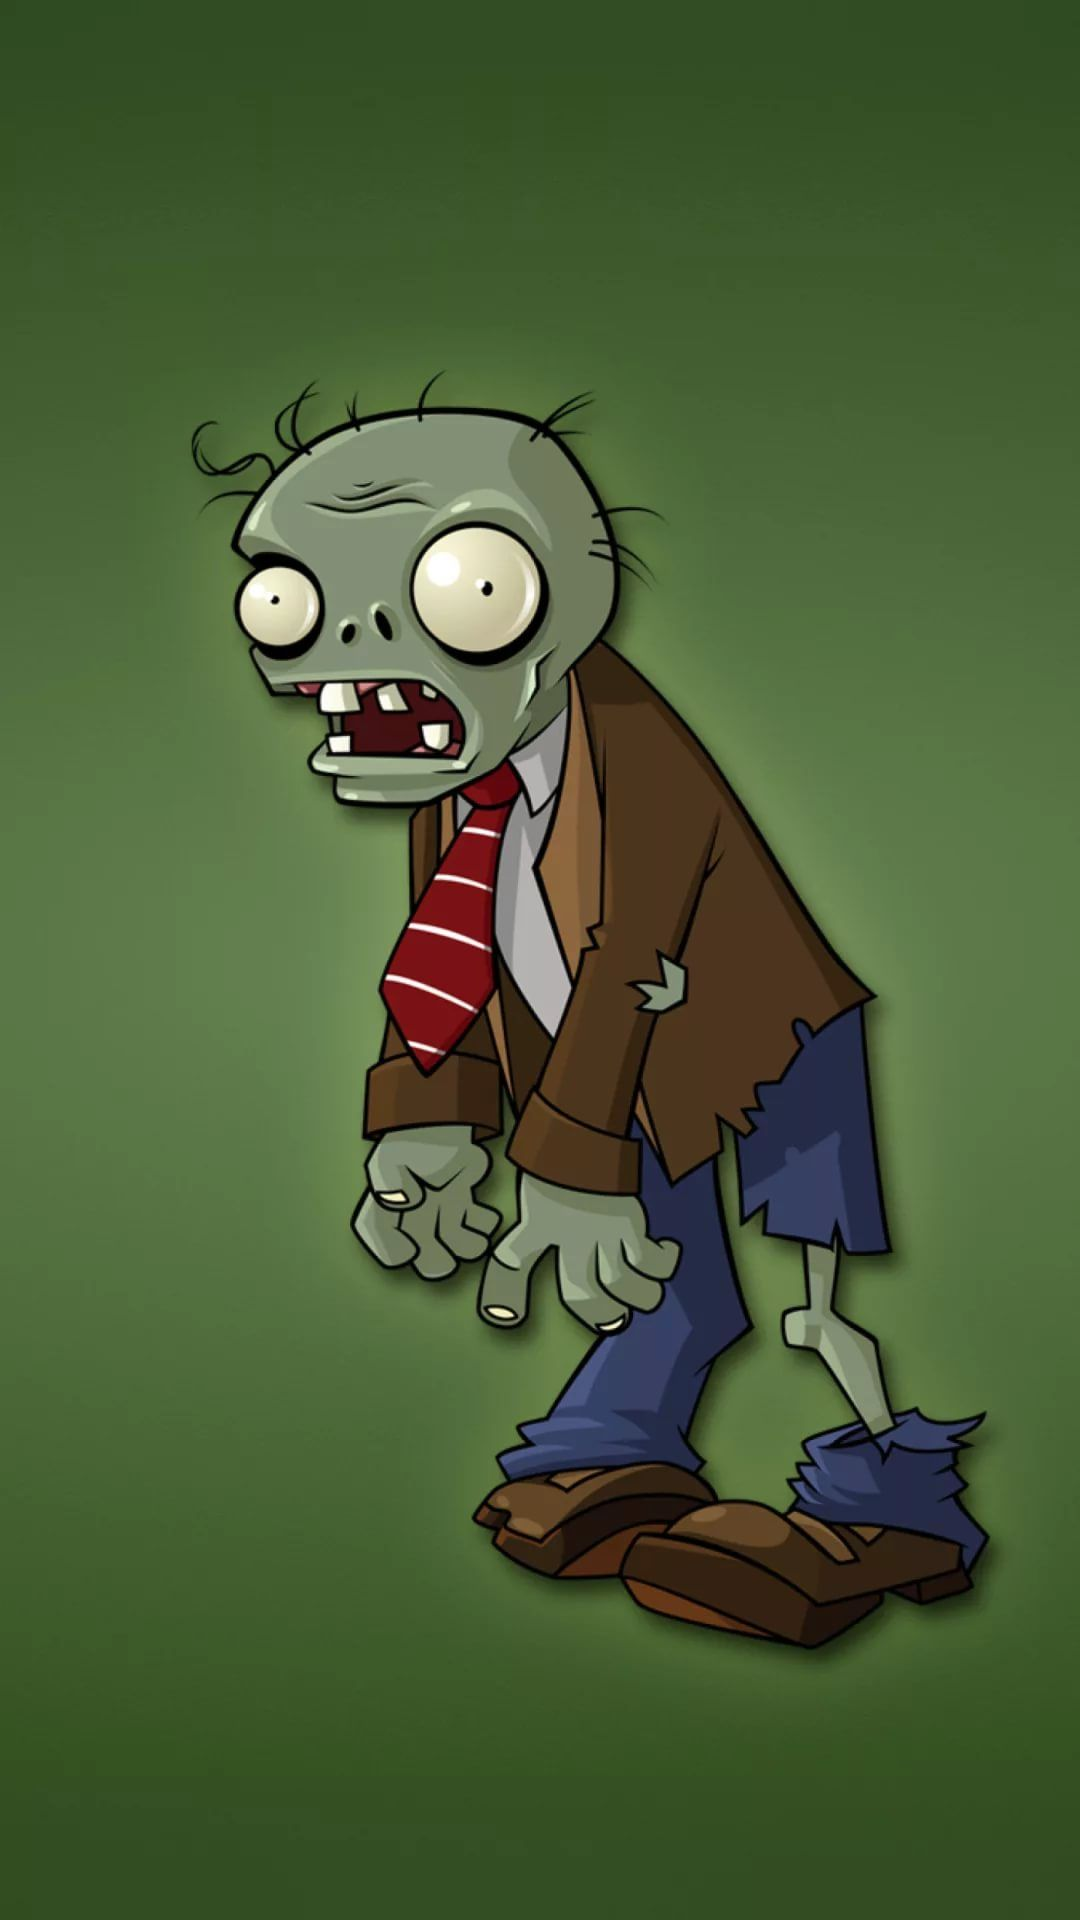 Zombie HD wallpaper for mobile